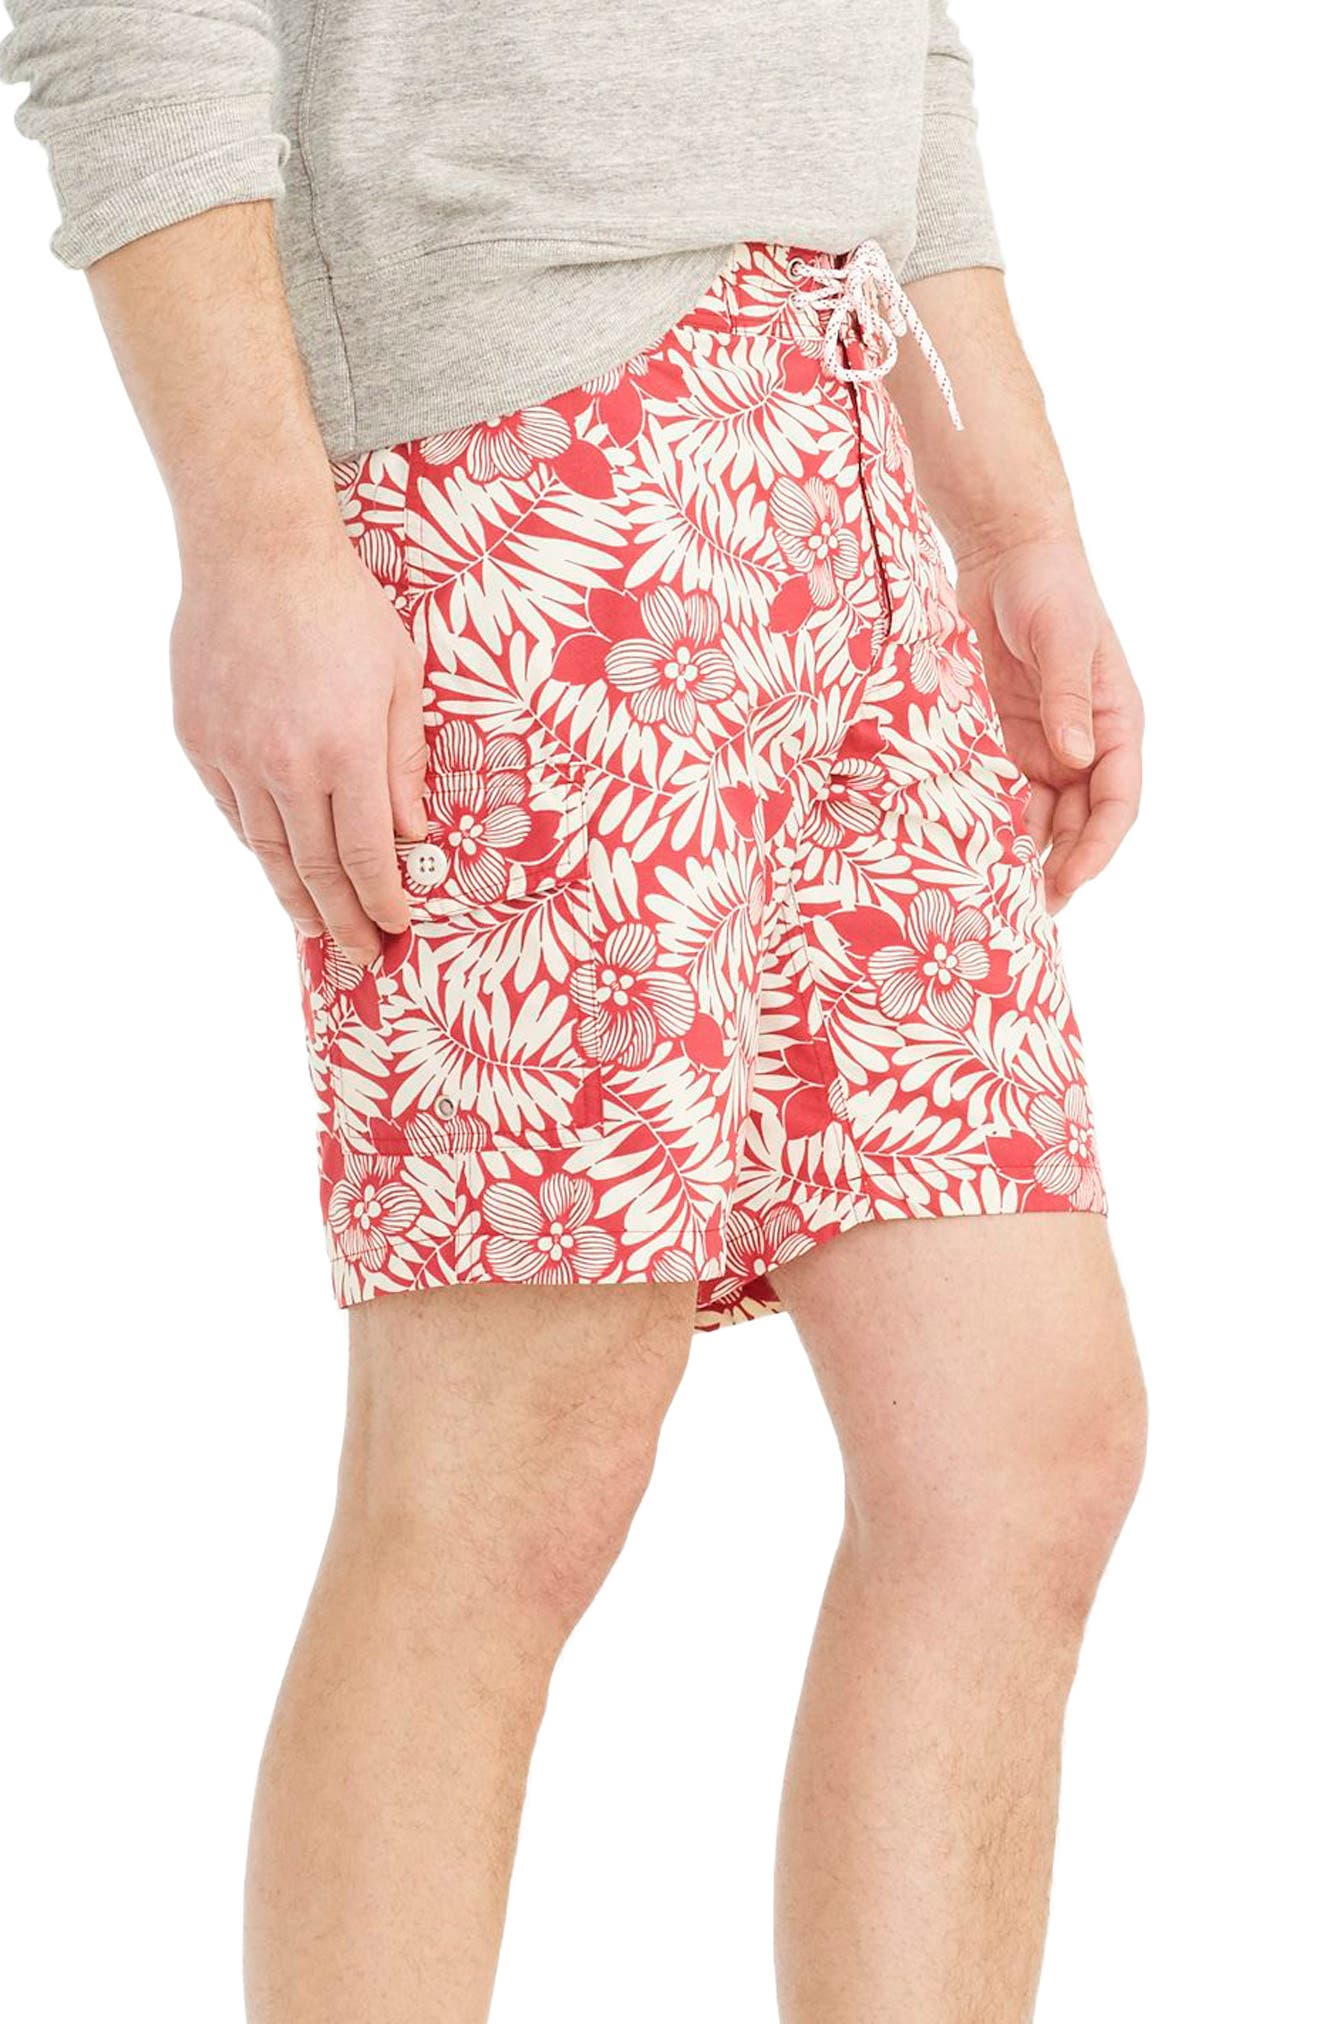 Fern Print Board Shorts,                             Alternate thumbnail 2, color,                             Red Ivory